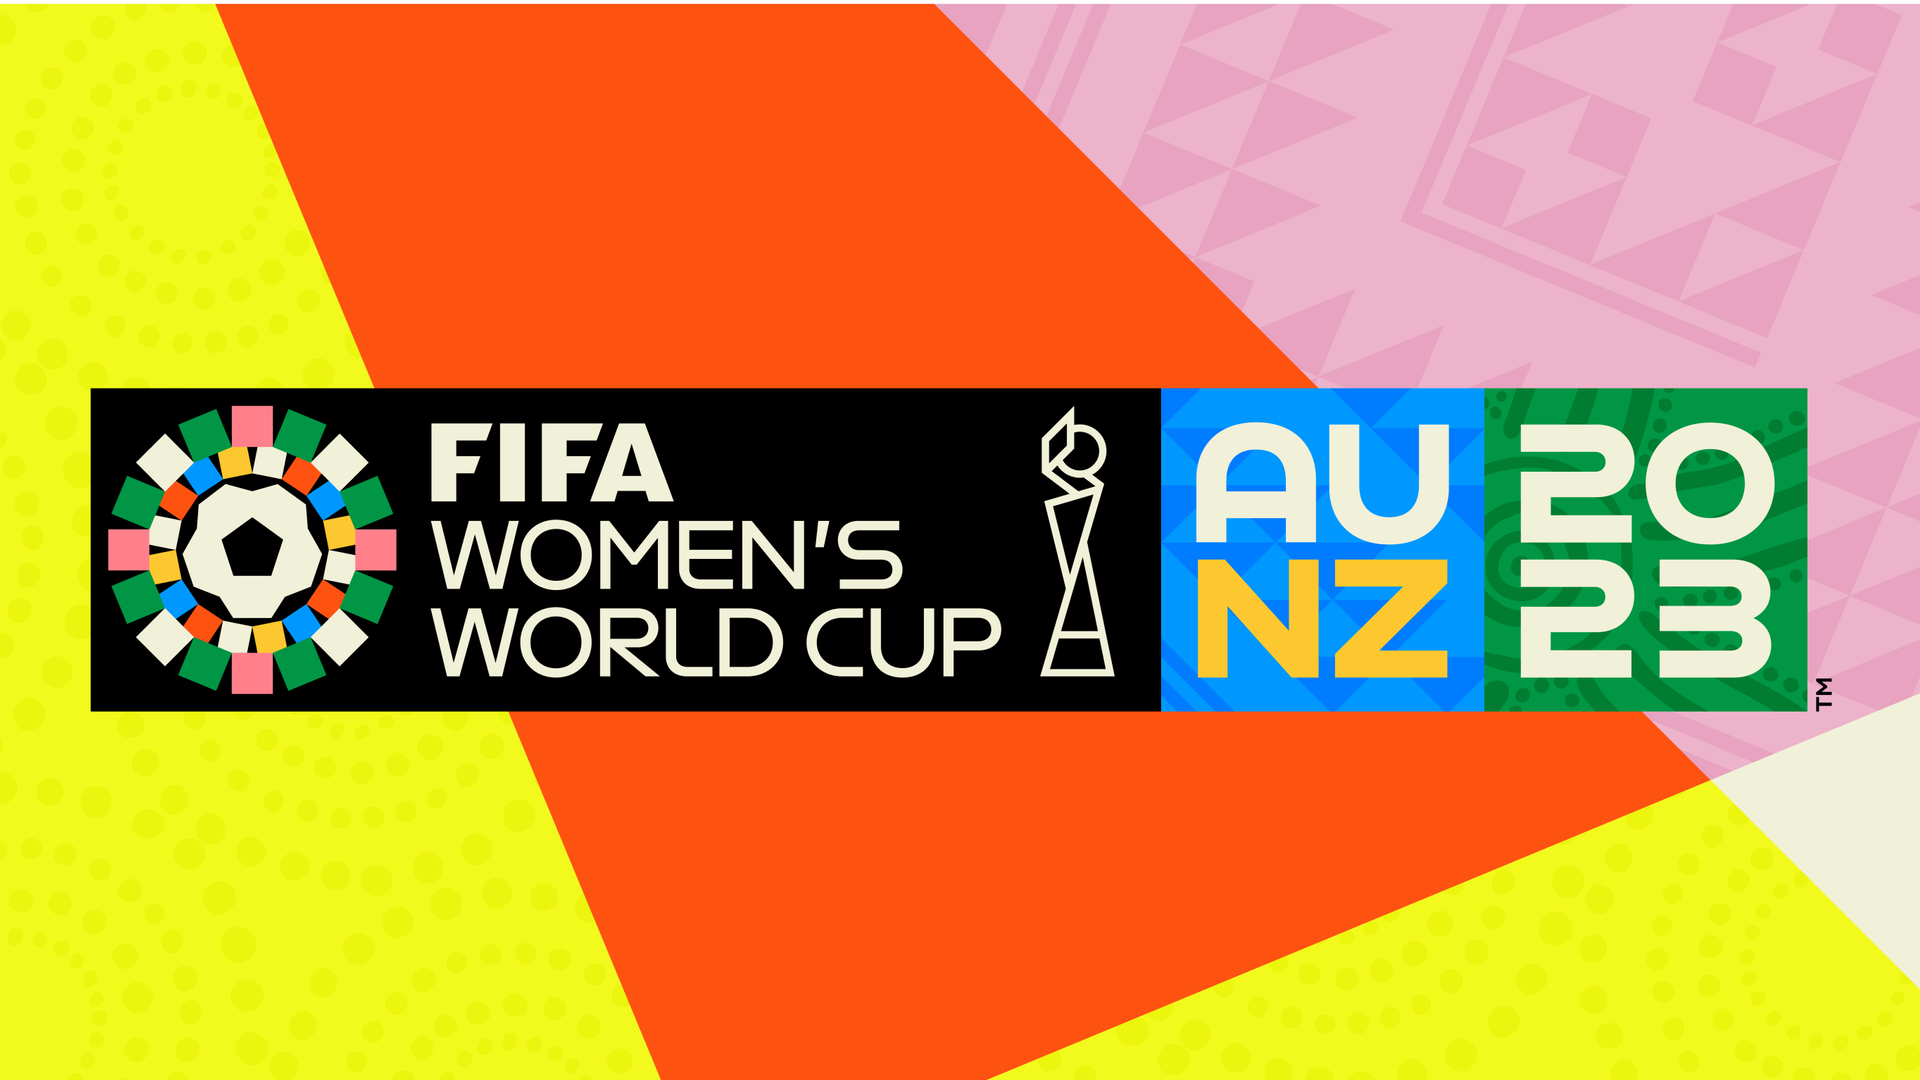 Logo and slogan for 2023 Women's World Cup released